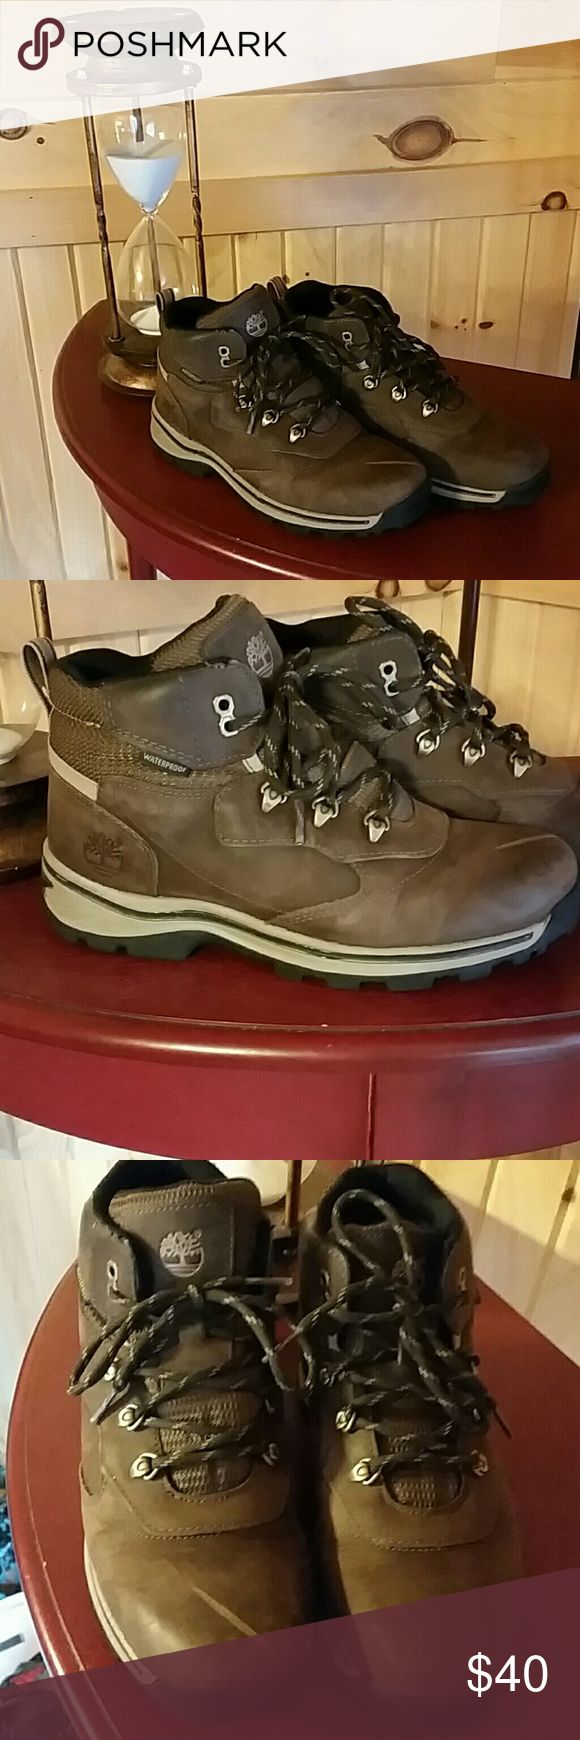 Timberland Youth Boots Size 5.5Y /7 Women A gently preloved pair of Timberland Boots A  Hiker Style without their box. The right shoe had a large scratch that is visible in my photo. Priced to moved..Purchased last year... Timberland Shoes Winter & Rain Boots